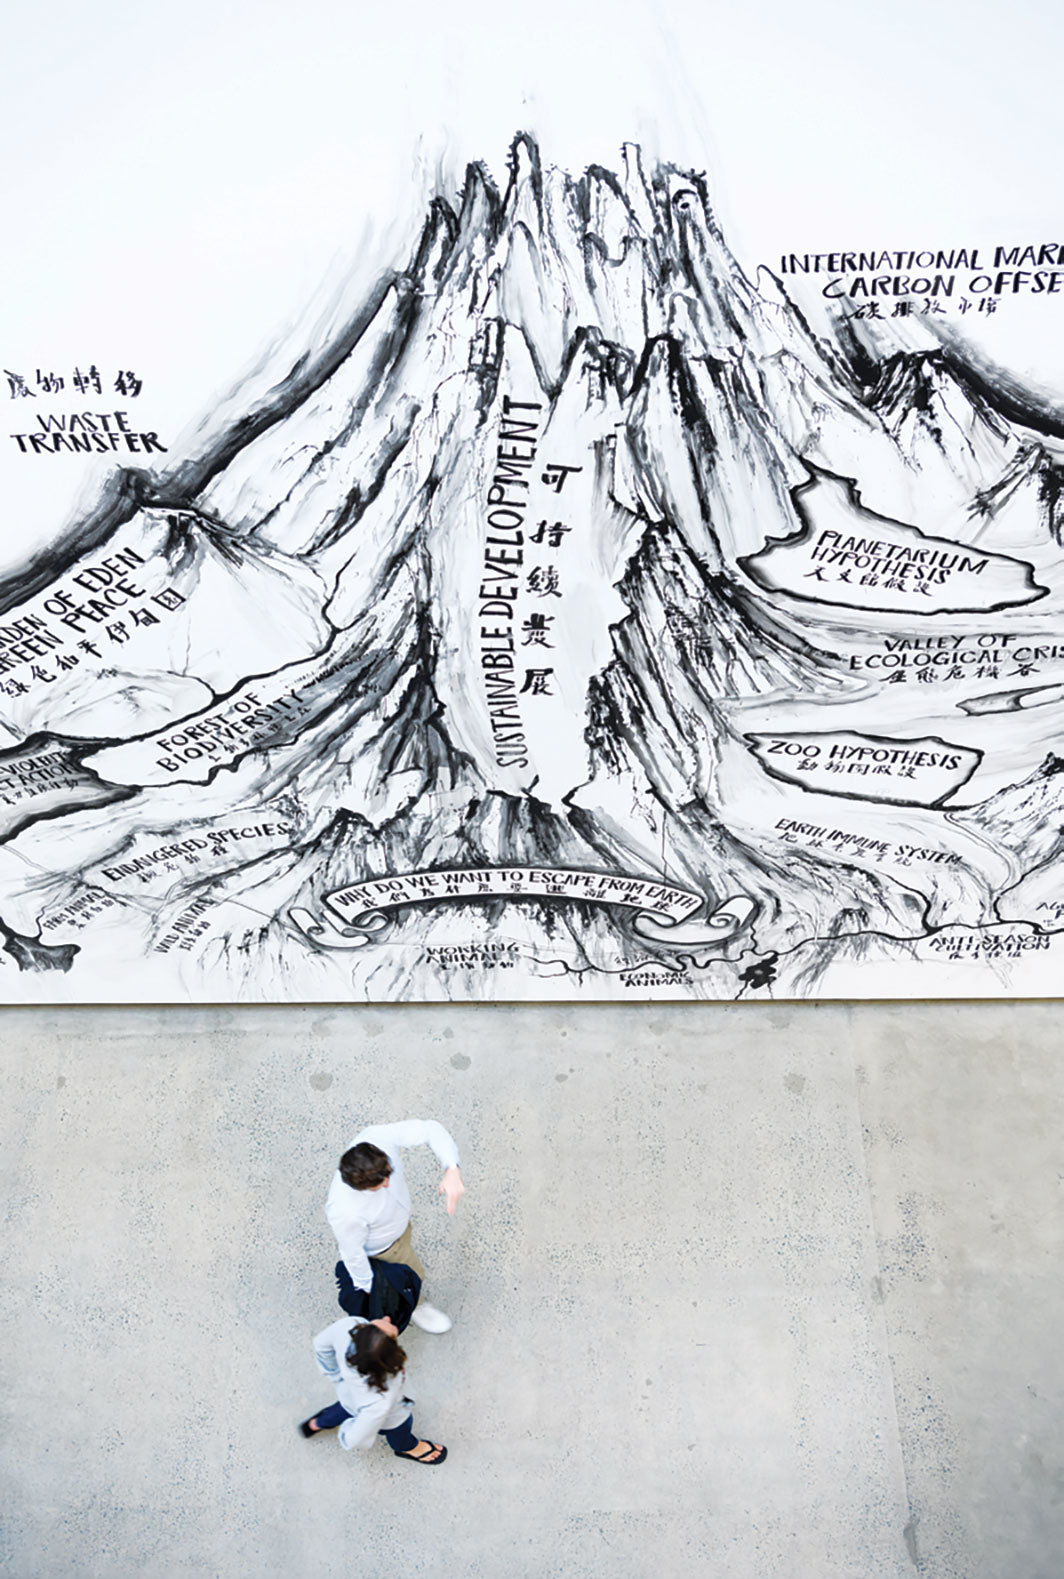 Qiu Zhijie, Map of Technological Ethics (detail), 2018, site-specific mural. Installation view. From the 9th Asia Pacific Triennial of Contemporary Art. Photo: Chloe Callistemon.